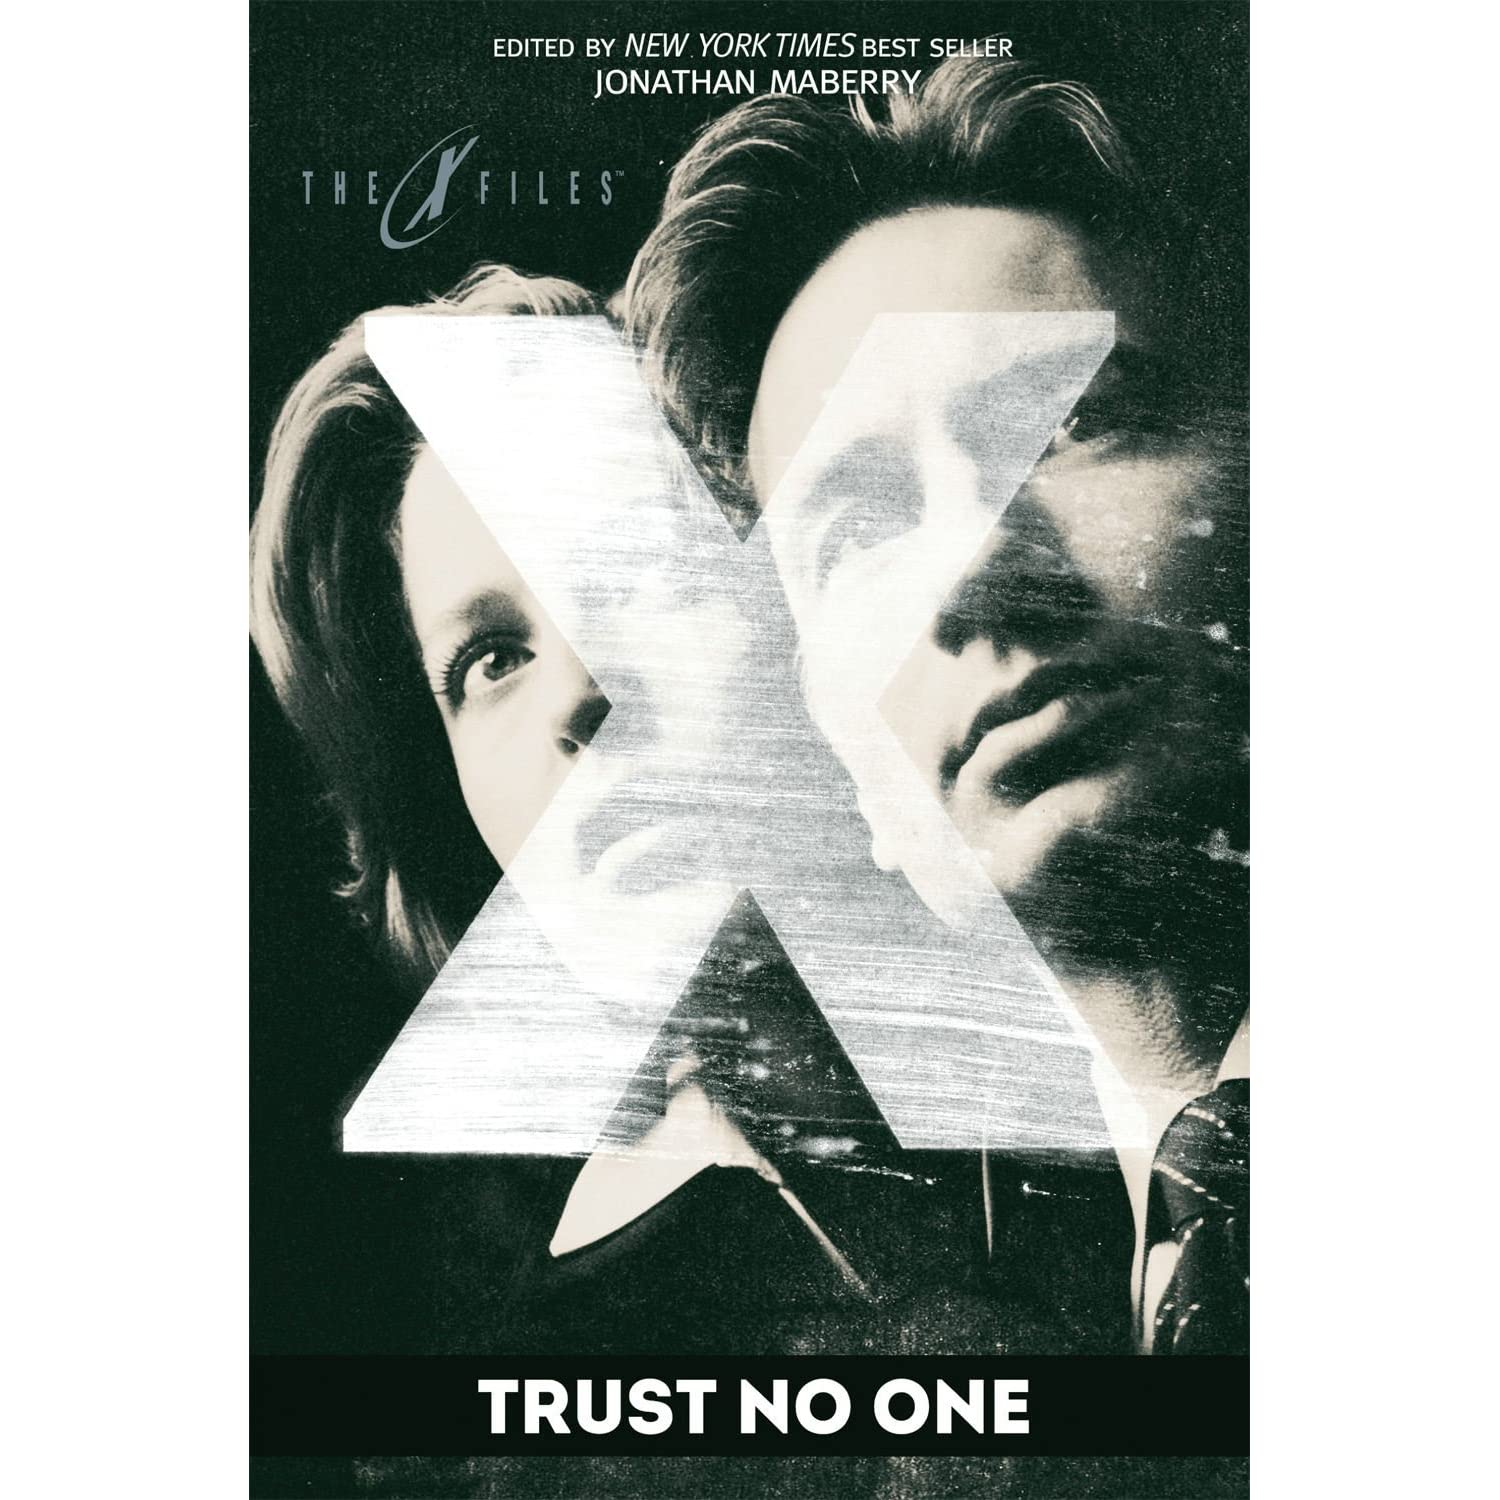 The Xfiles Trust No One By Jonathan Maberry — Reviews. Friday Holiday Quotes. Fashion Quotes To Live By. Sister Quotes Never Apart. Bible Verses Questionable. Faith Guiding Quotes. Motivational Zumba Quotes. Disney Quasimodo Quotes. Birthday Quotes For Ex Boyfriend